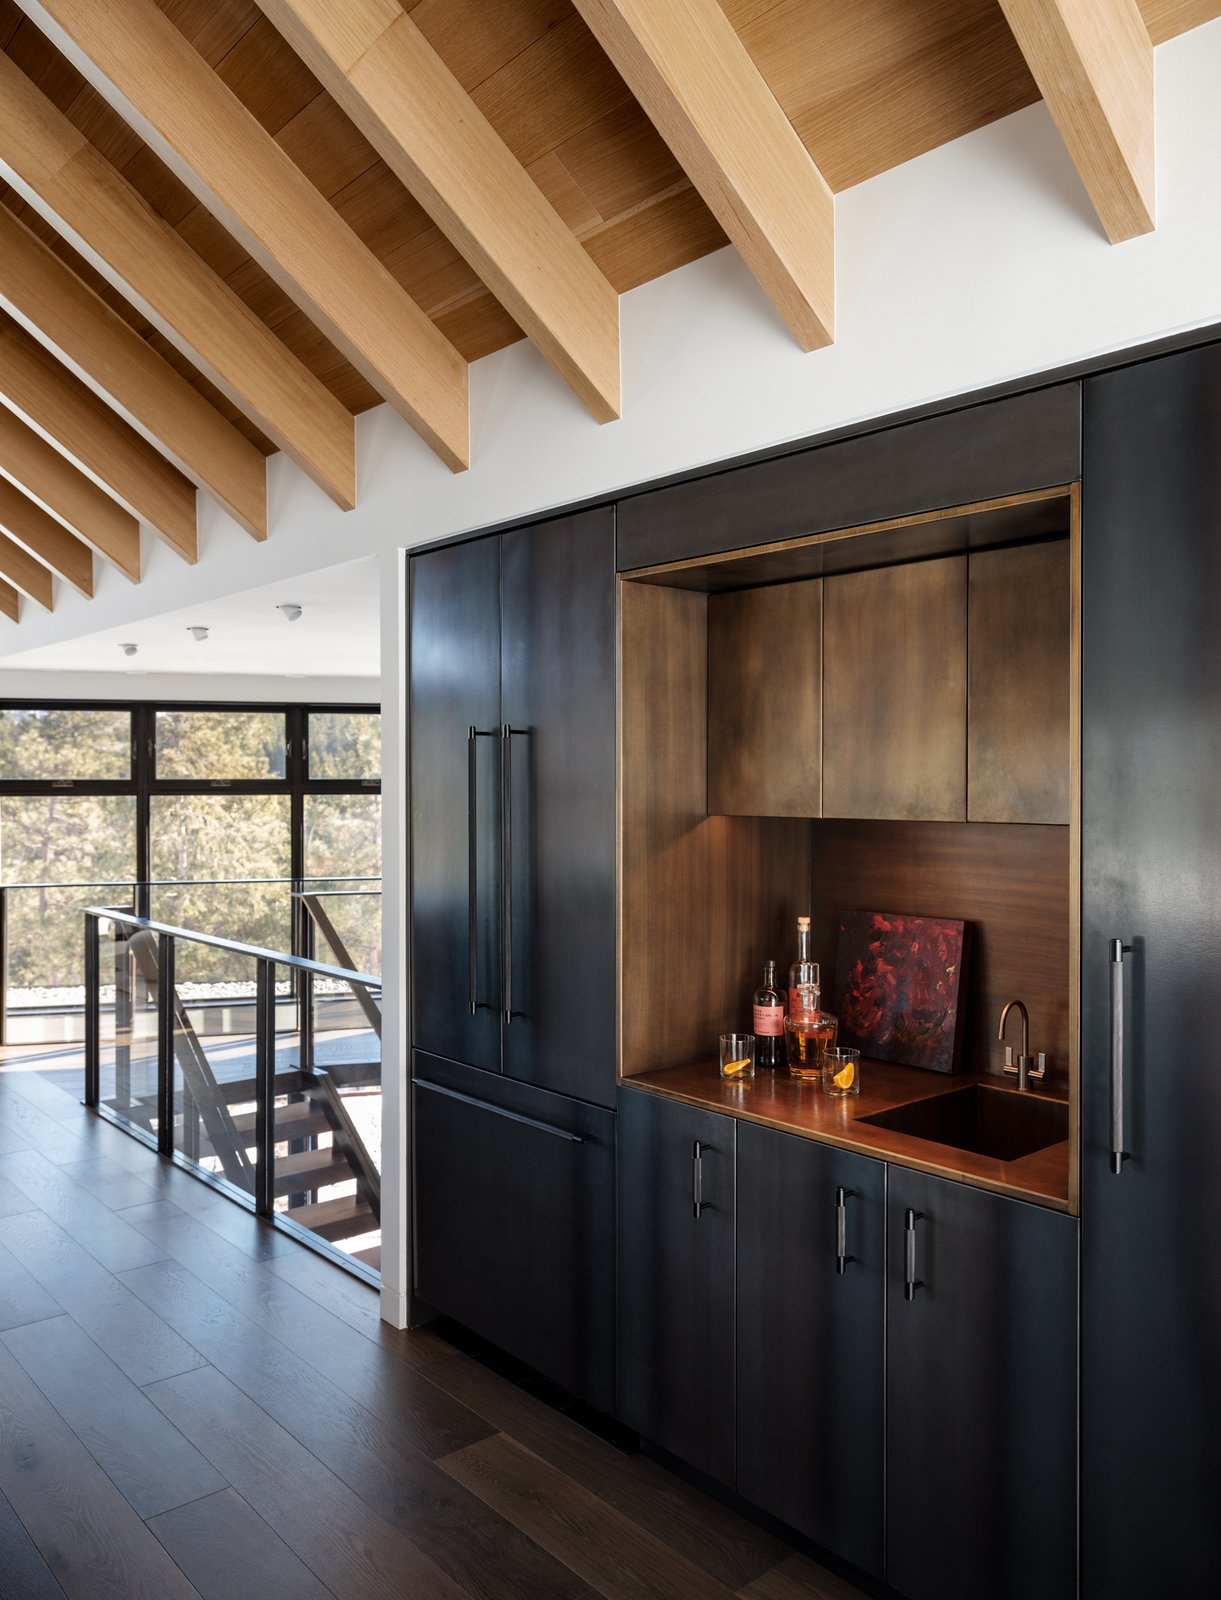 Kitchen, Metal Counter, Beverage Center, Metal Cabinet, Refrigerator, Undermount Sink, and Dark Hardwood Floor We think this centrally located custom metal/brass bar is an entertainers dream!   Modern Cabin by HMHAI